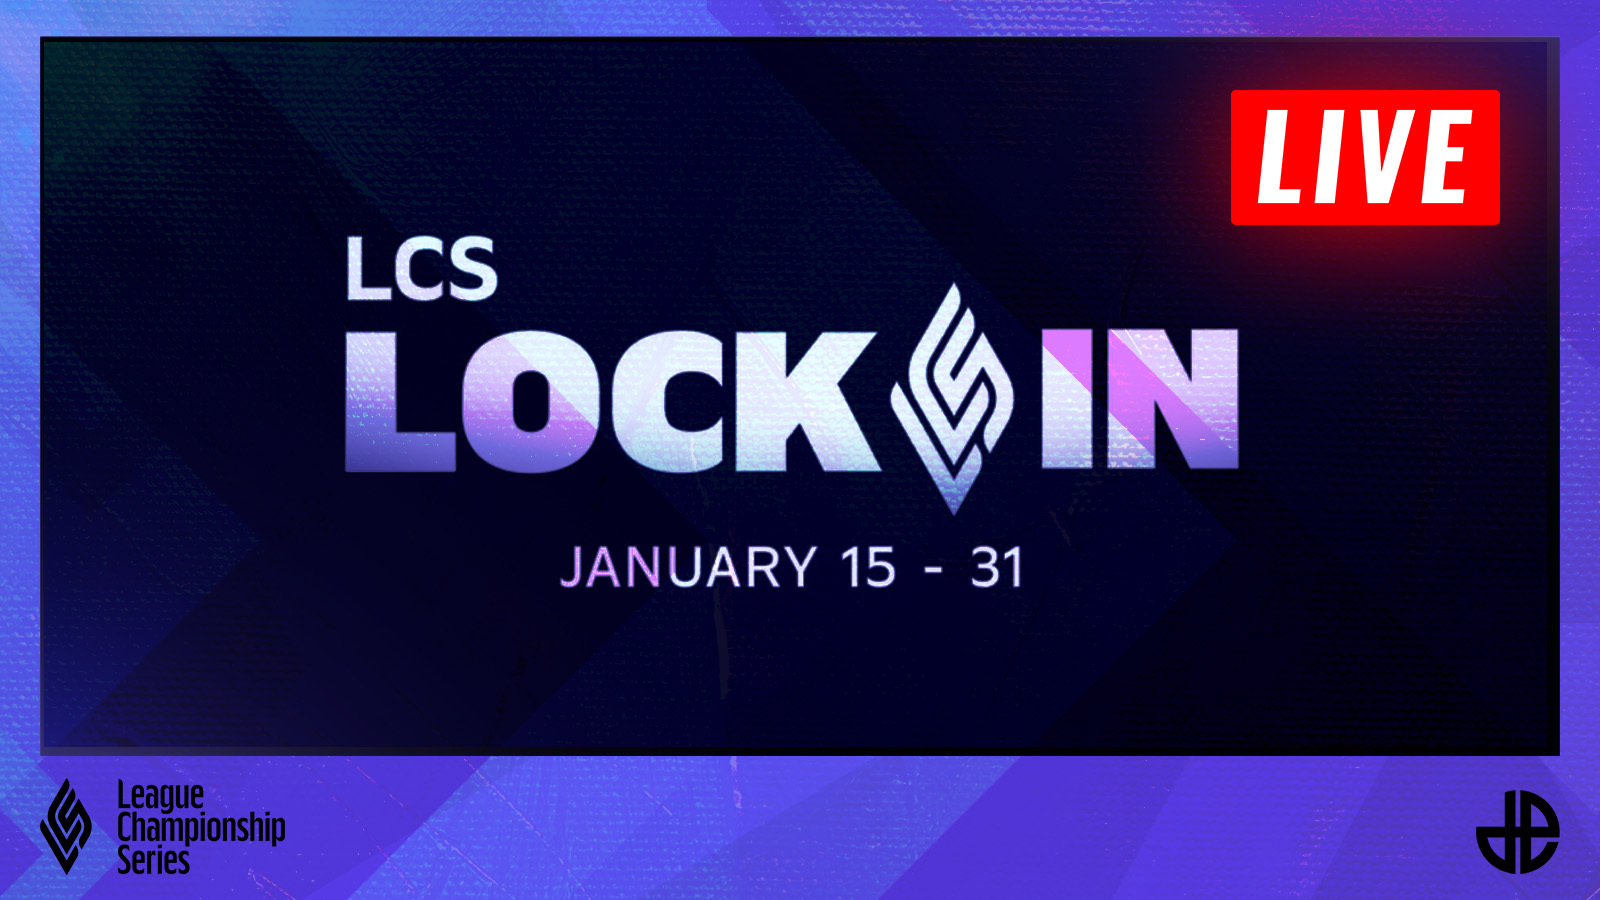 LCS Lock In 2021